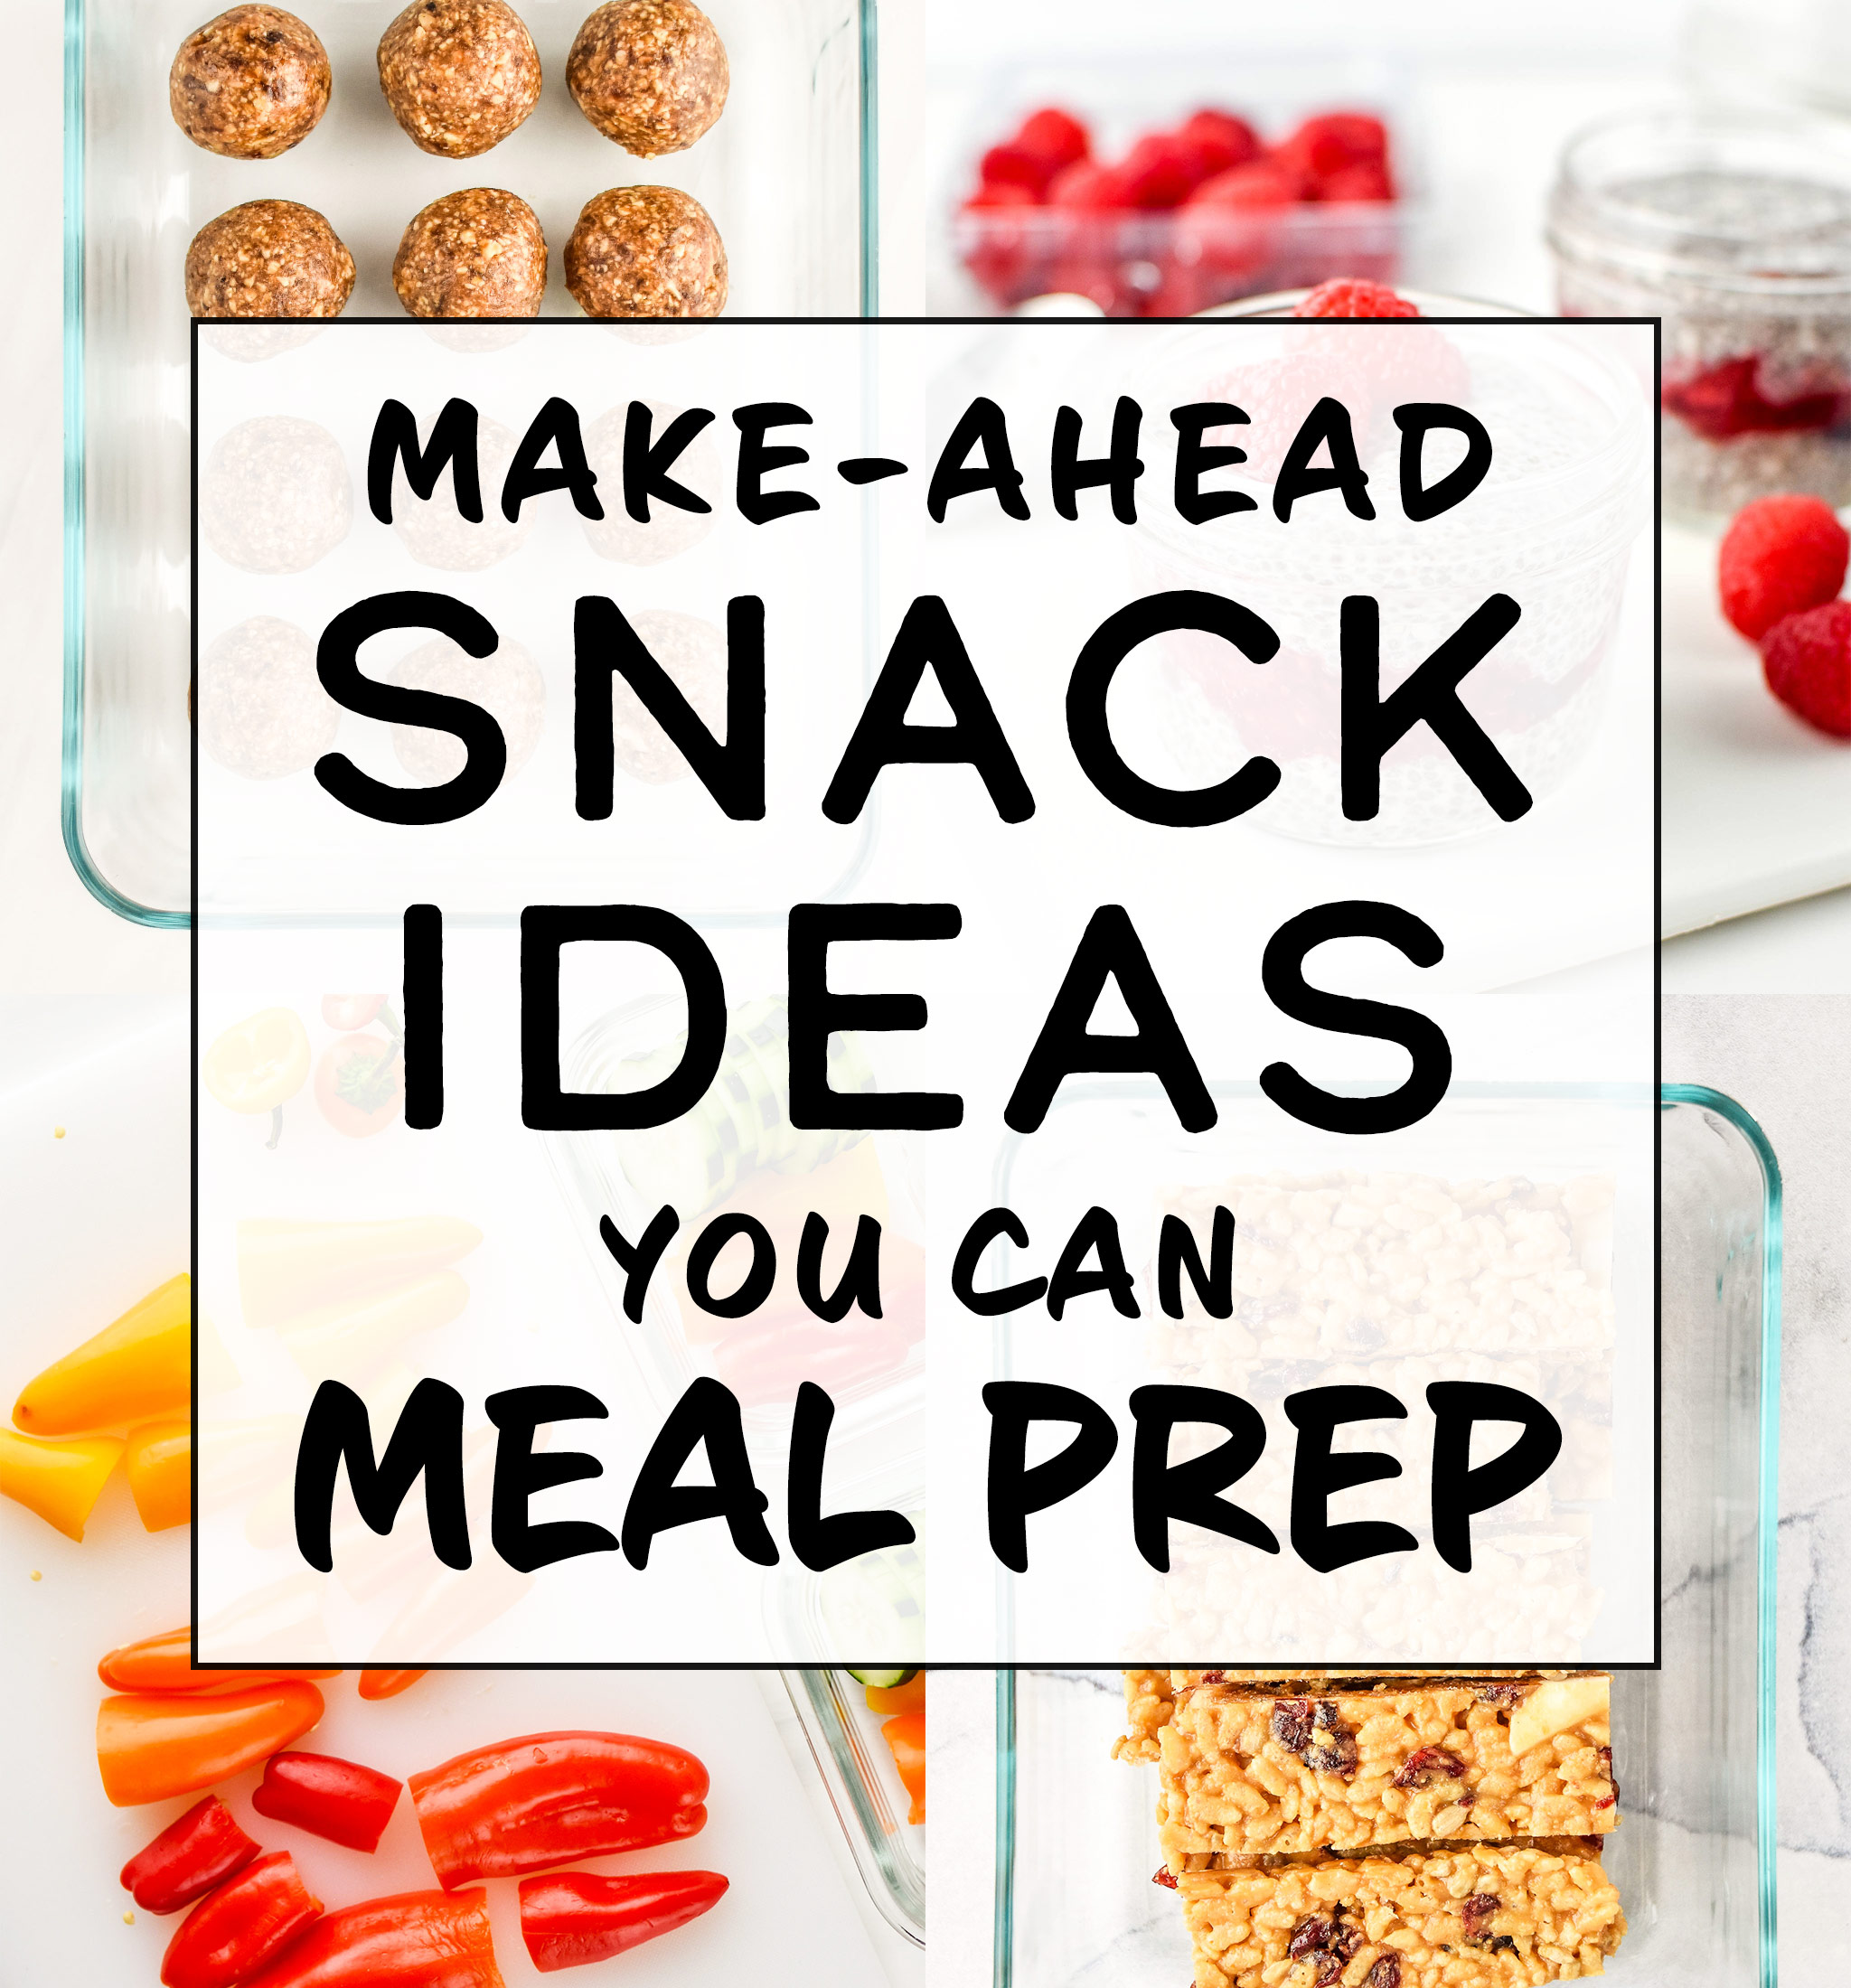 cover photo for article make-ahead snacks you can meal prep.